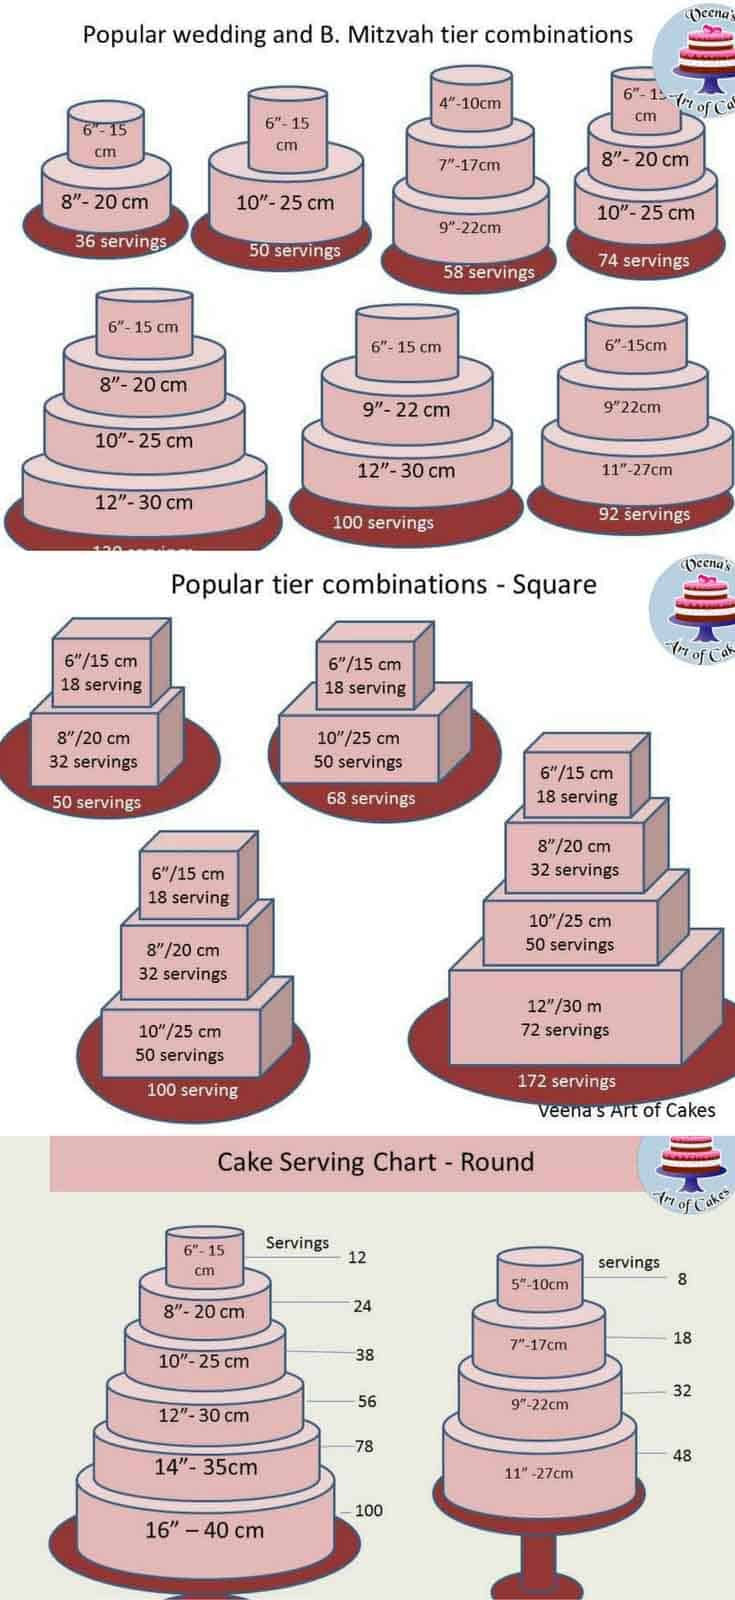 8 10 12 wedding cake servings cake serving chart guide popular tier combinations 10513